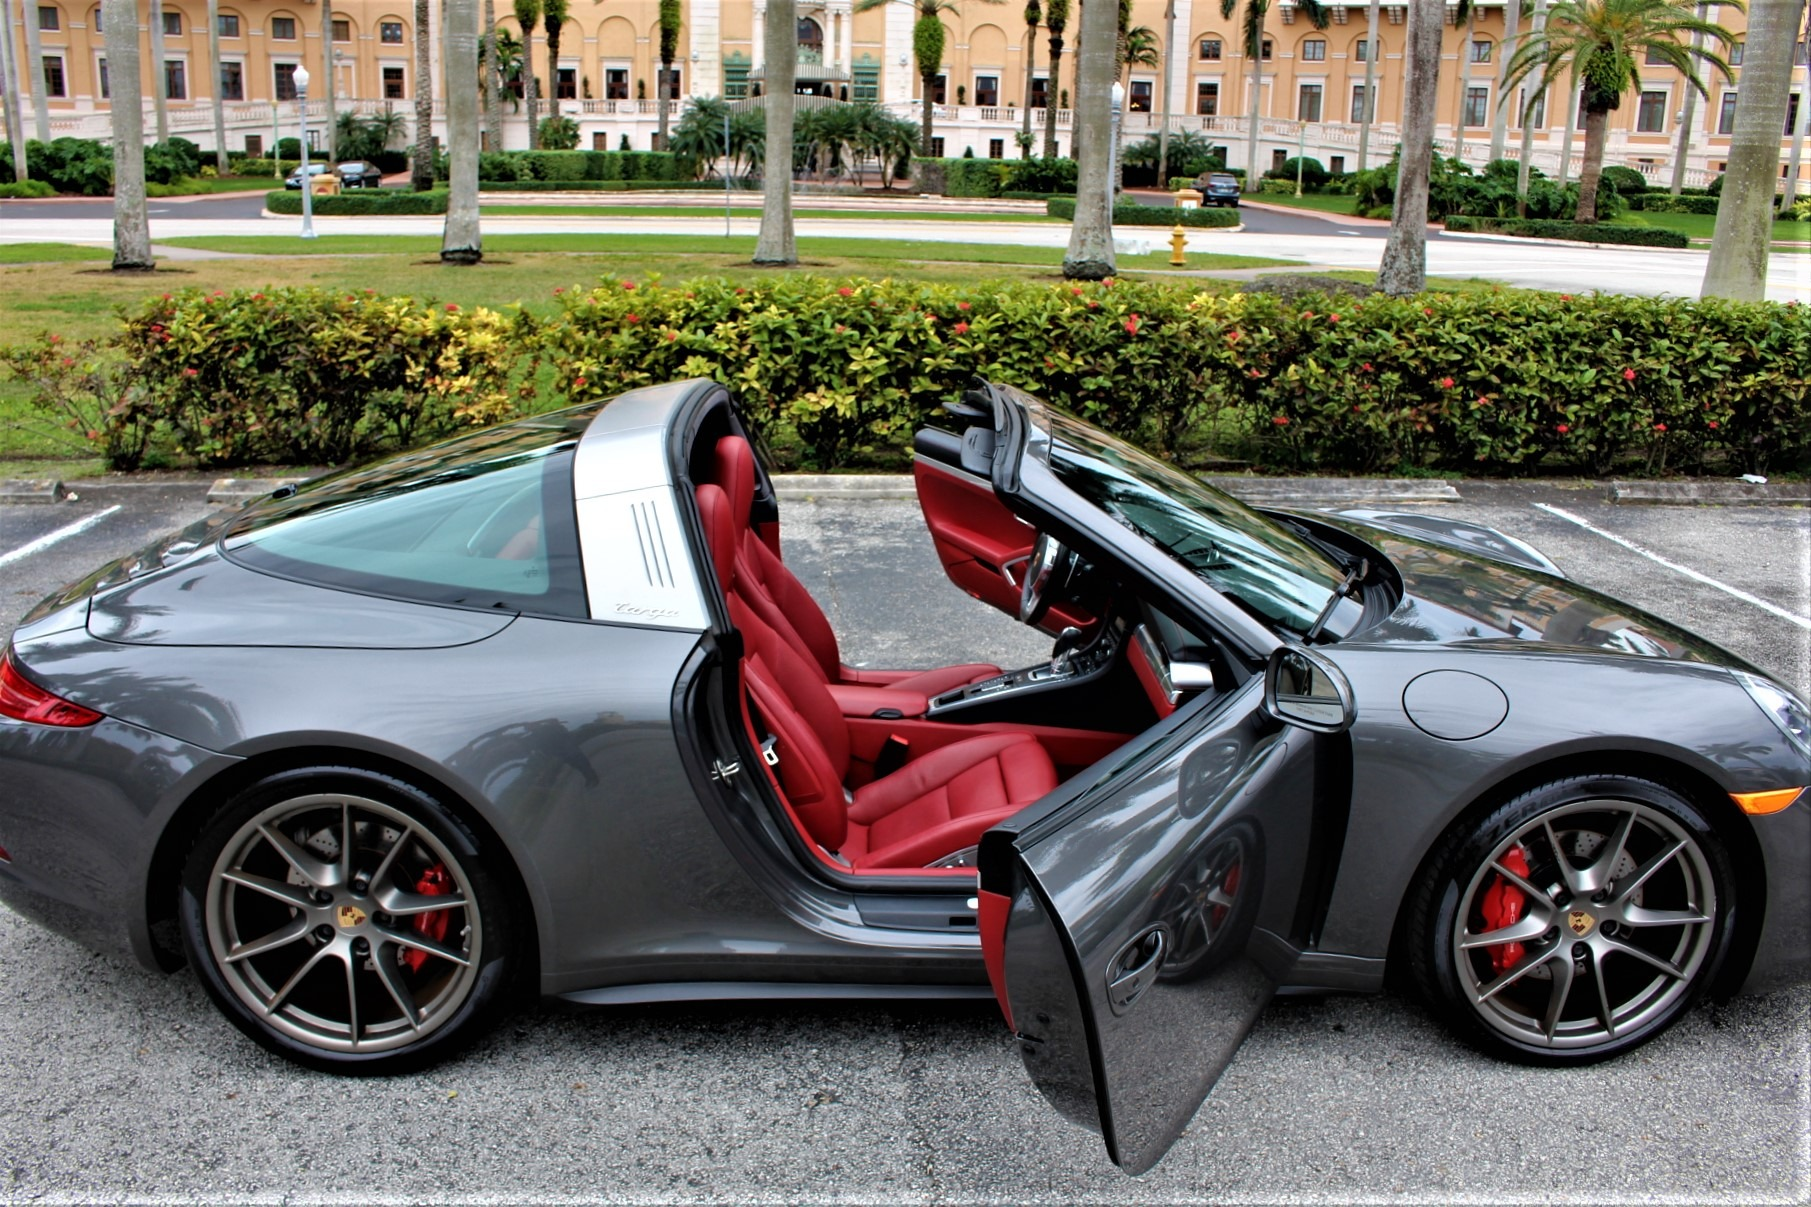 Used 2015 Porsche 911 Targa 4S for sale Sold at The Gables Sports Cars in Miami FL 33146 3